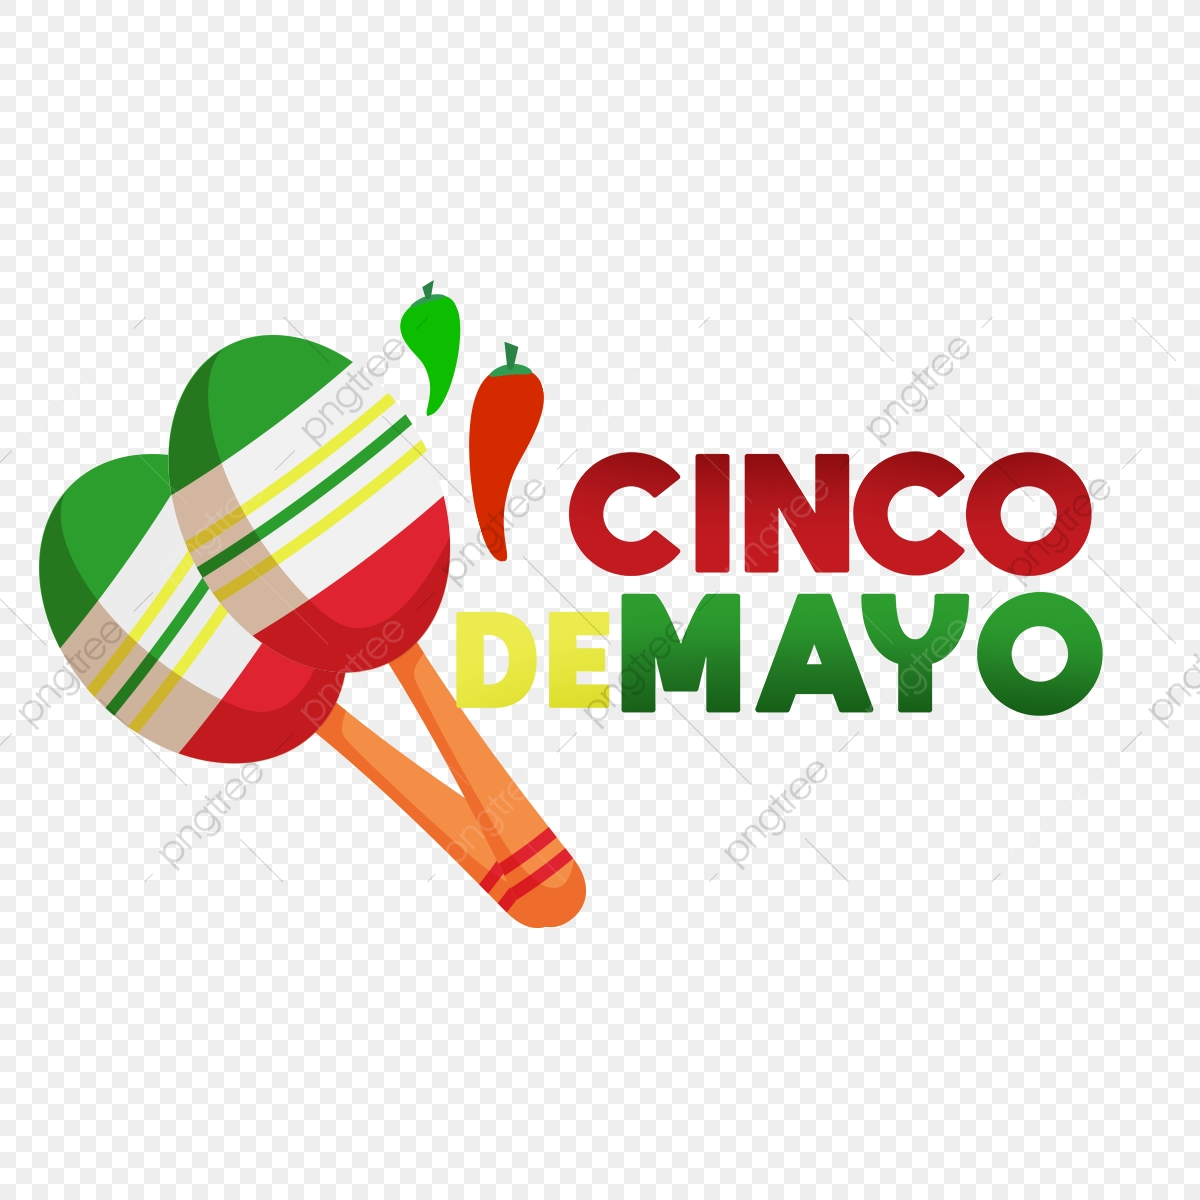 Cinco De Mayo Design Element, Mayo, Cinco, Fiesta PNG Transparent.